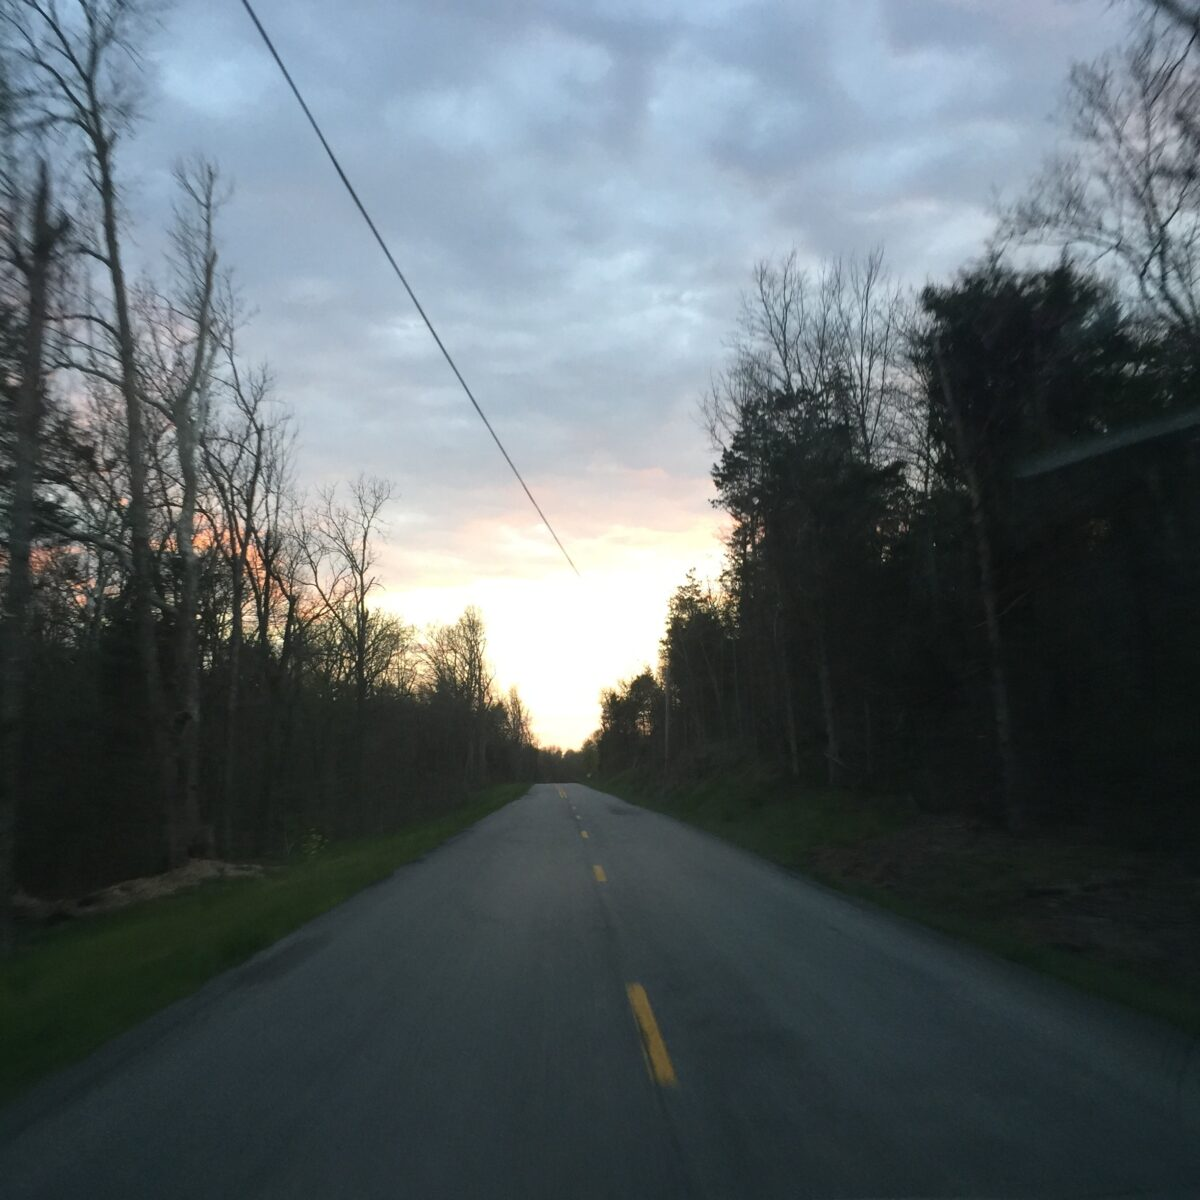 On the road to the Abbey of Gethsemani